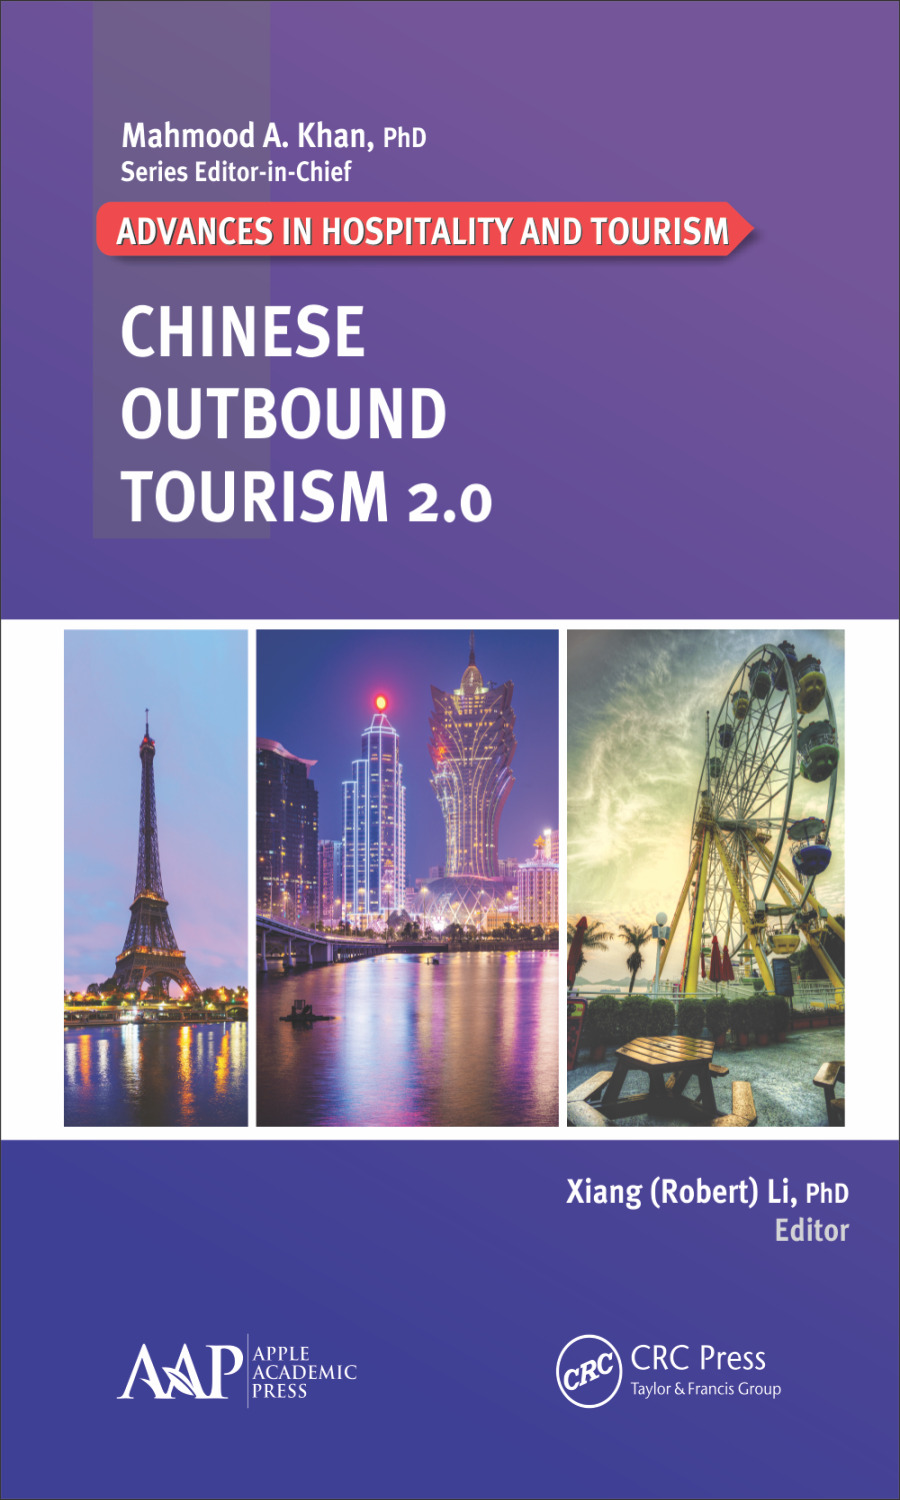 Chinese Outbound Tourism 2.0